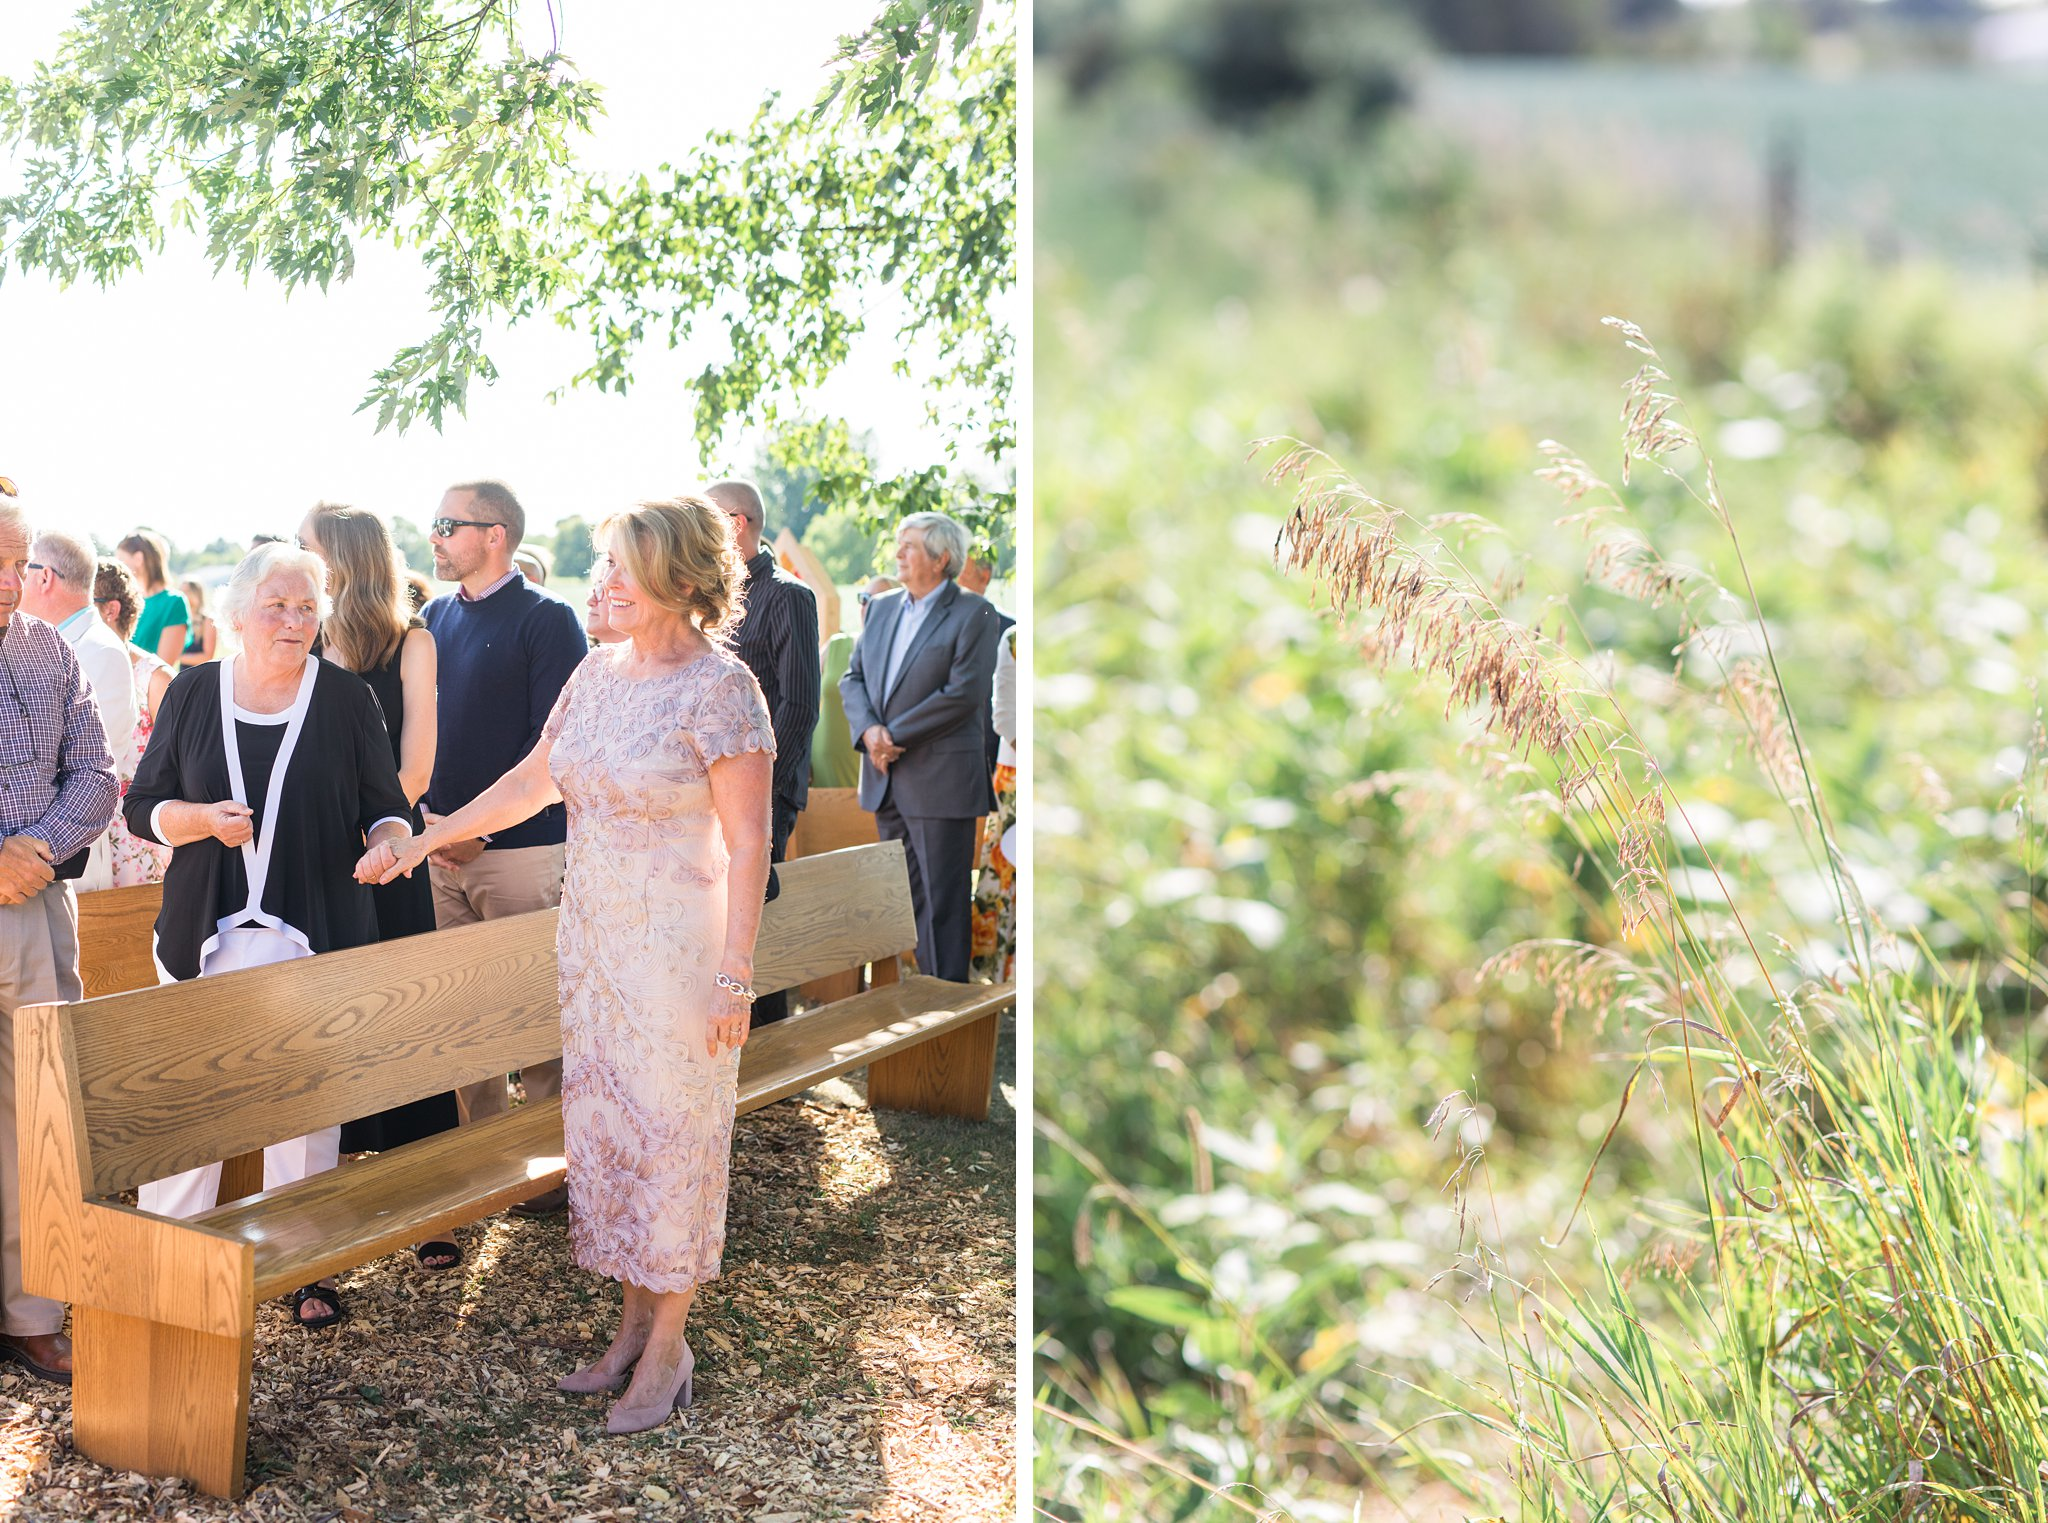 Mother of the bride, Private Estate Wedding Photos, Amy Pinder Photography